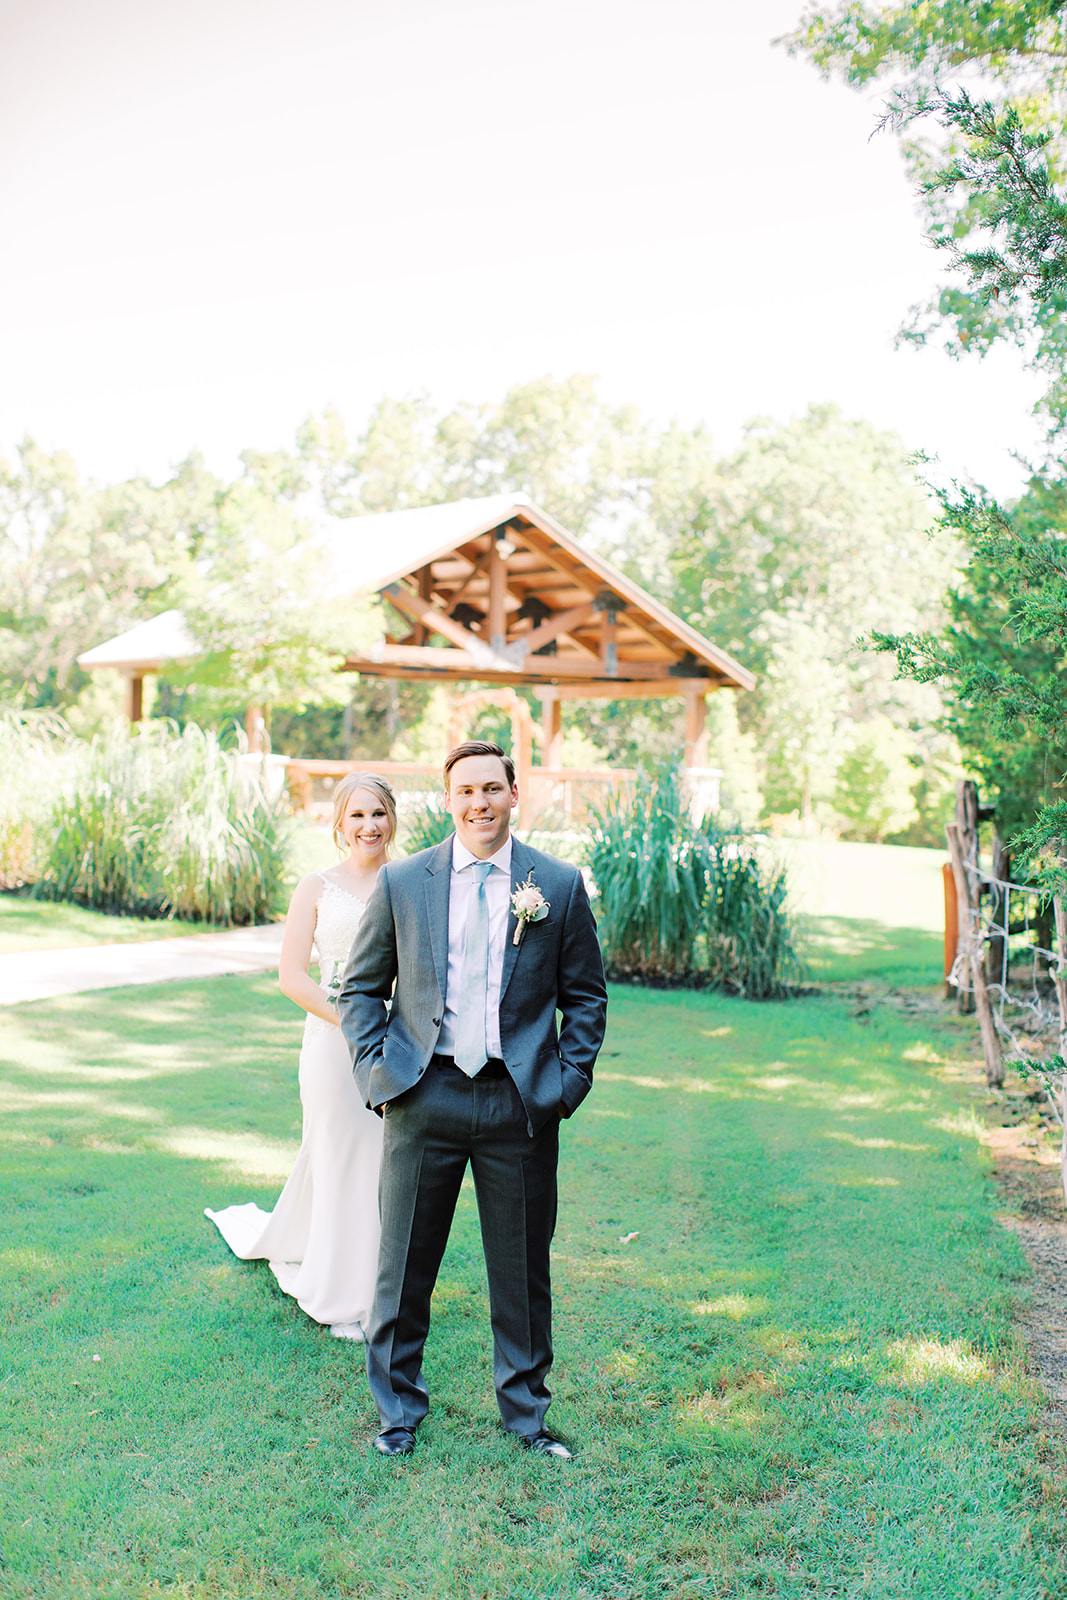 Outdoor wedding portrait: | Romantic blue Texas wedding at Spring Venue by Alexa Kay Events